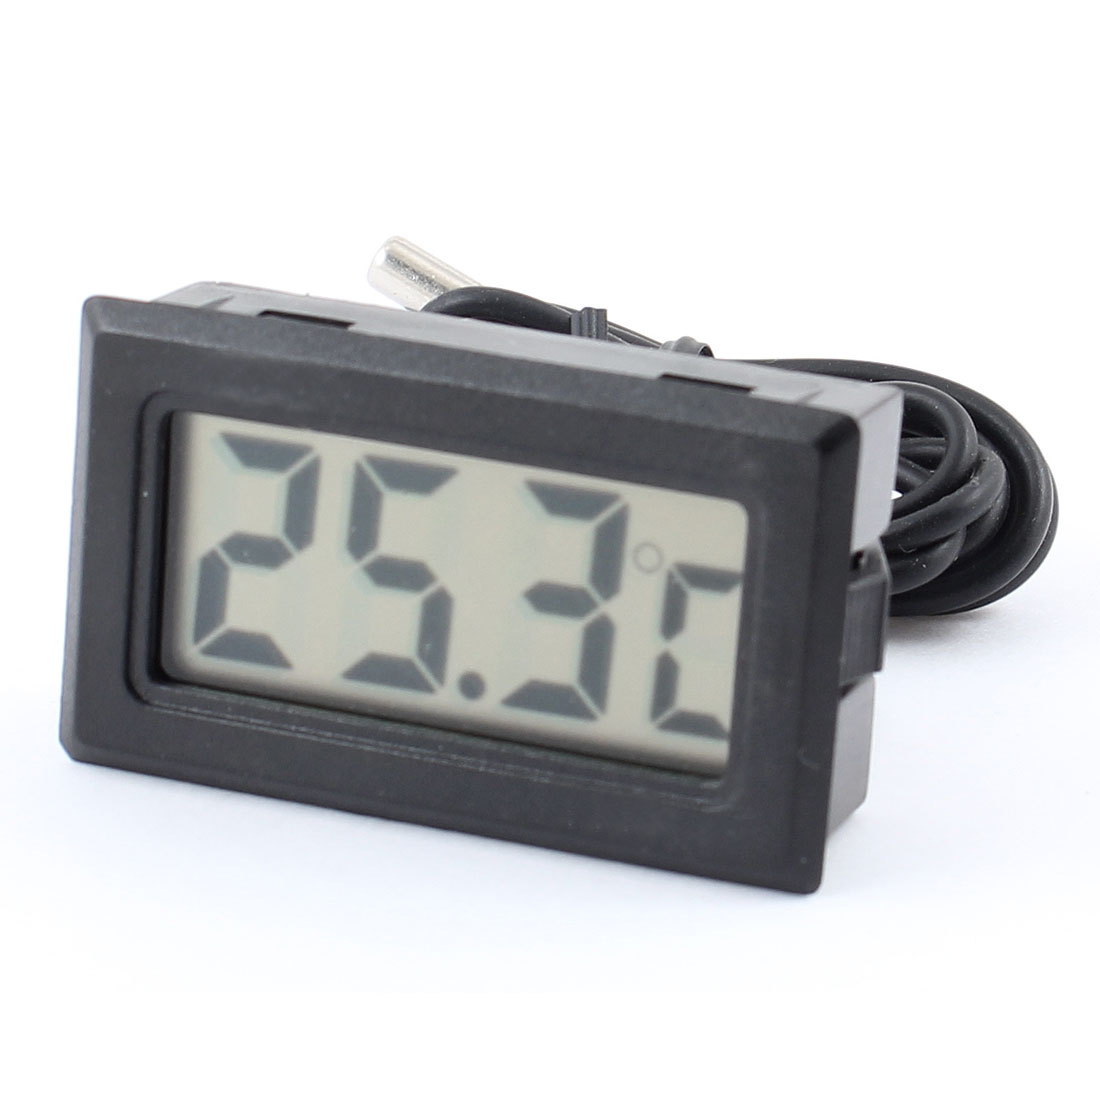 -50C to 110C Termperature Probe LCD Display Digital Thermometer + Cable